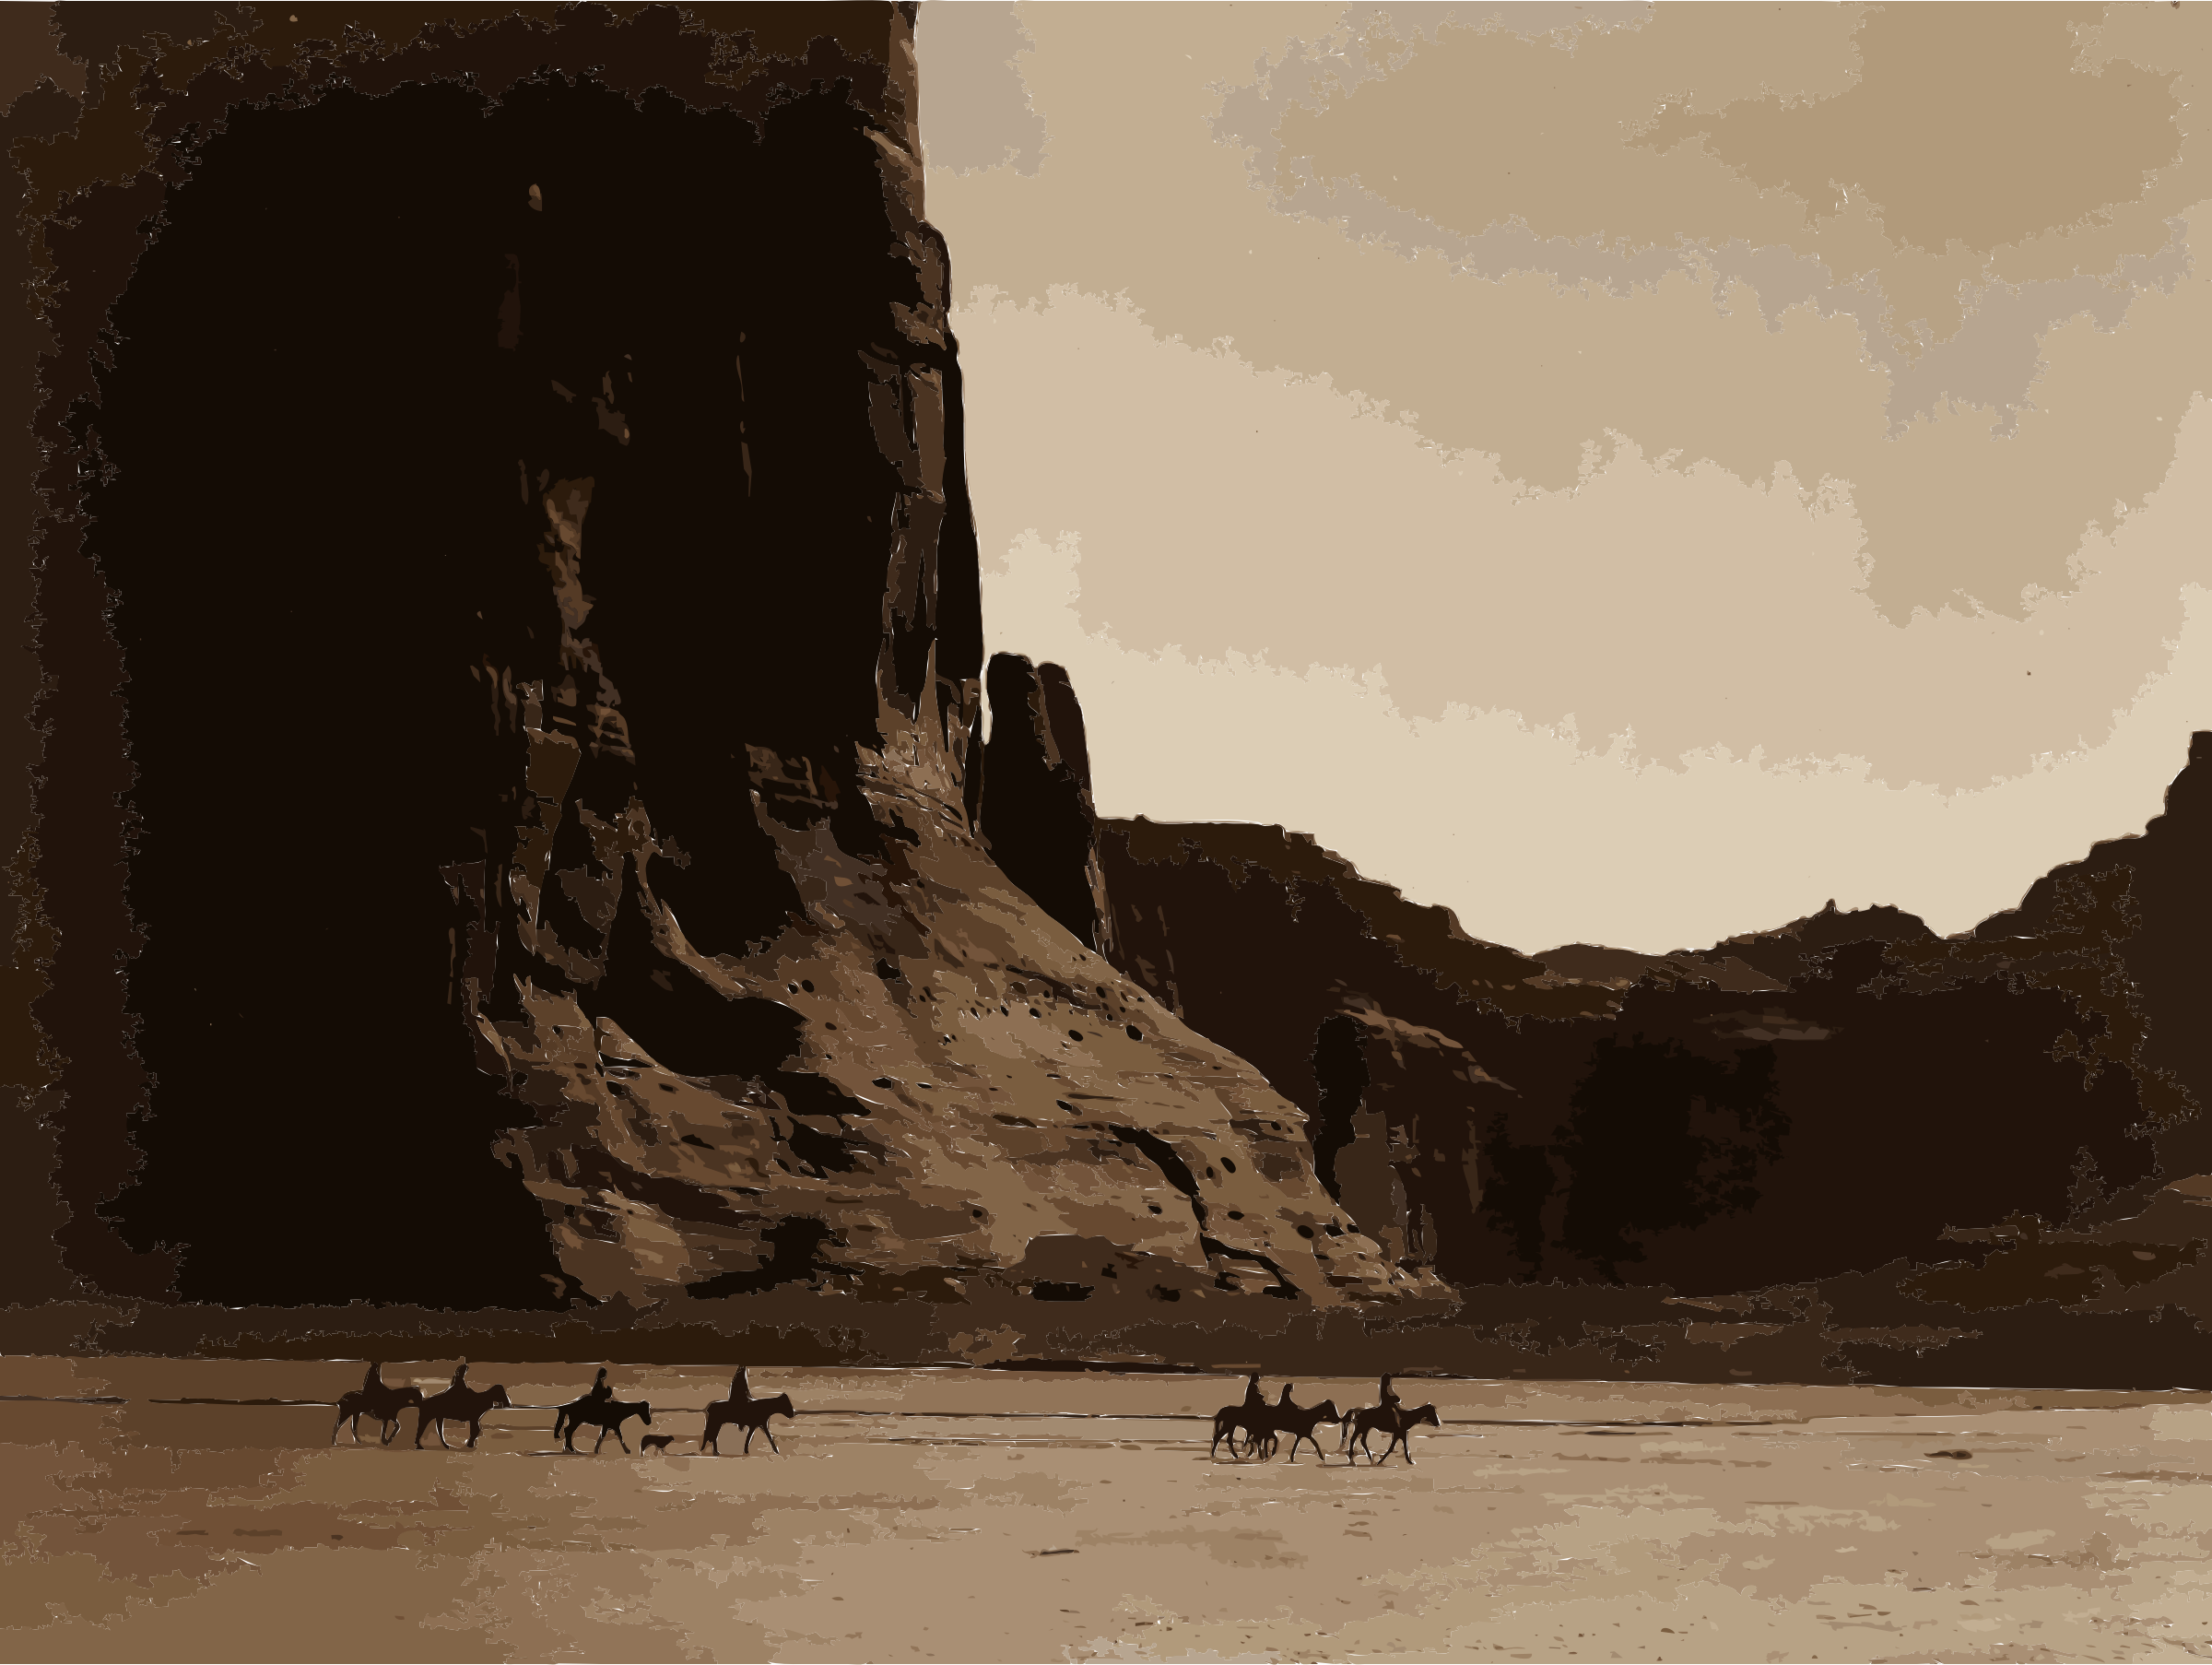 Canyon de Chelly, Navajo by 5n7epj+9741chlinrj78